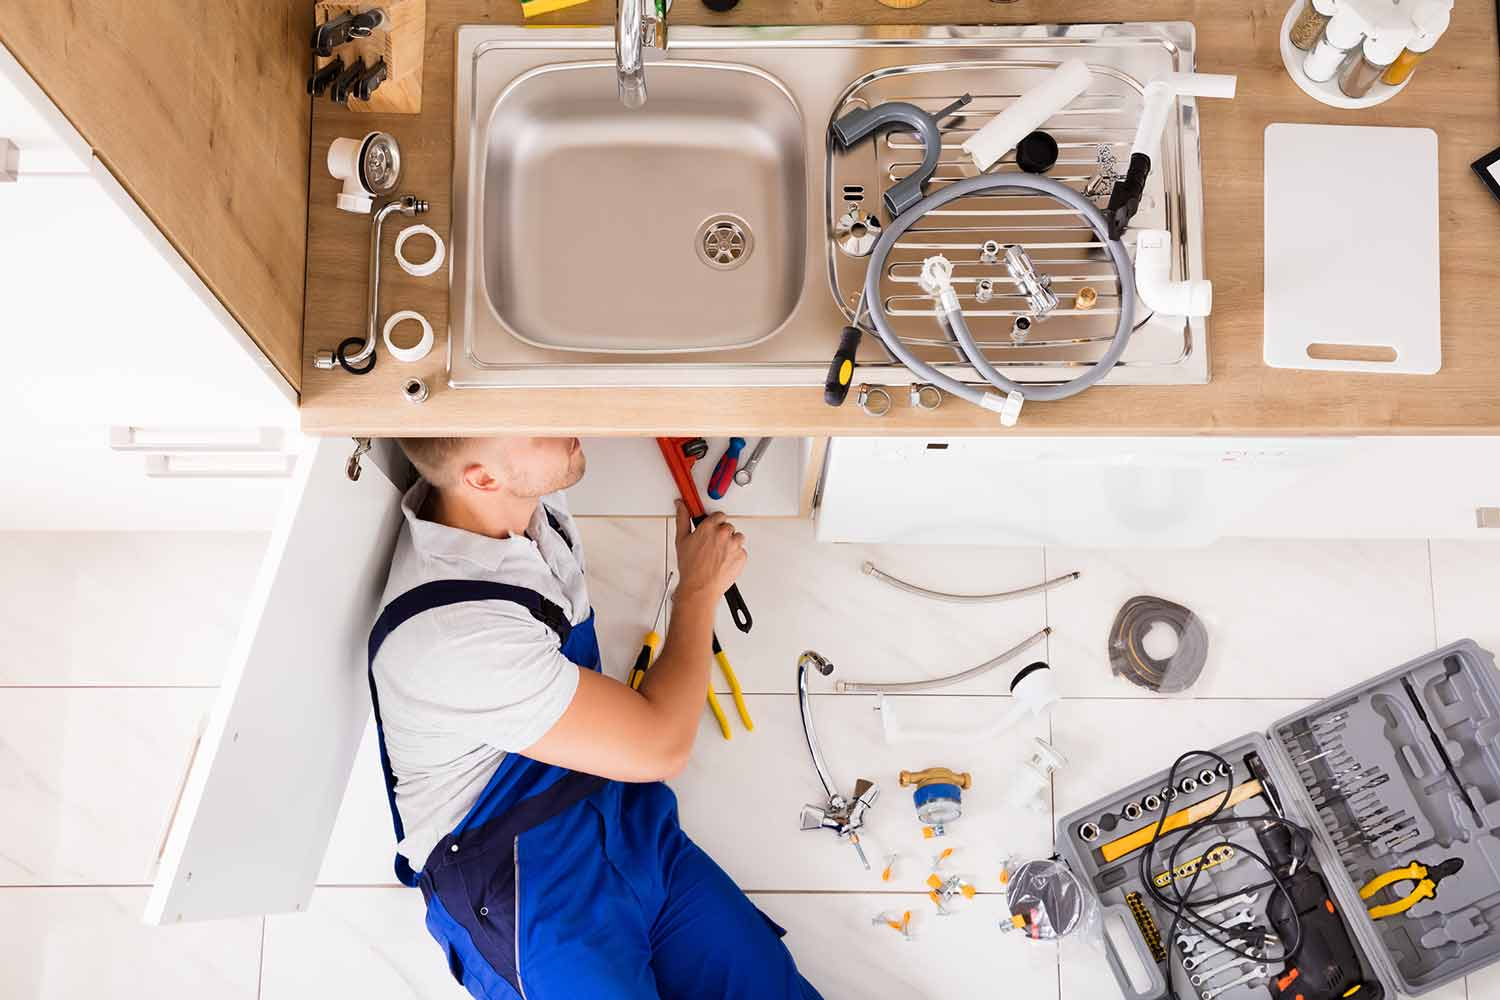 Plumber is fixing a burst pipe under a broken sink at a customer's home.